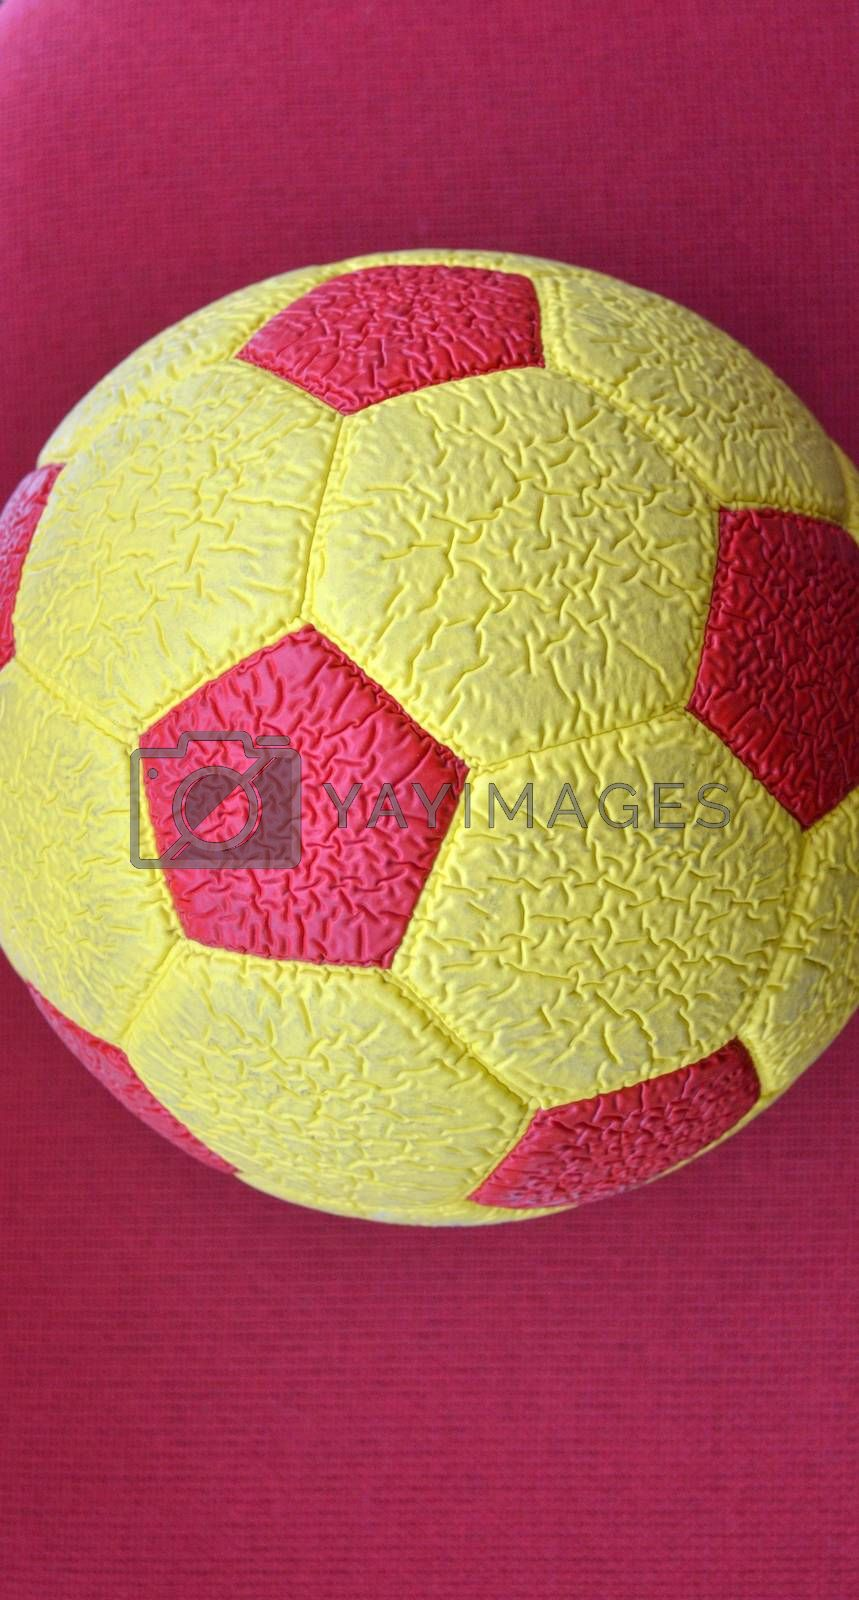 picture of a Red and yellow Soccer Ball macro, texture